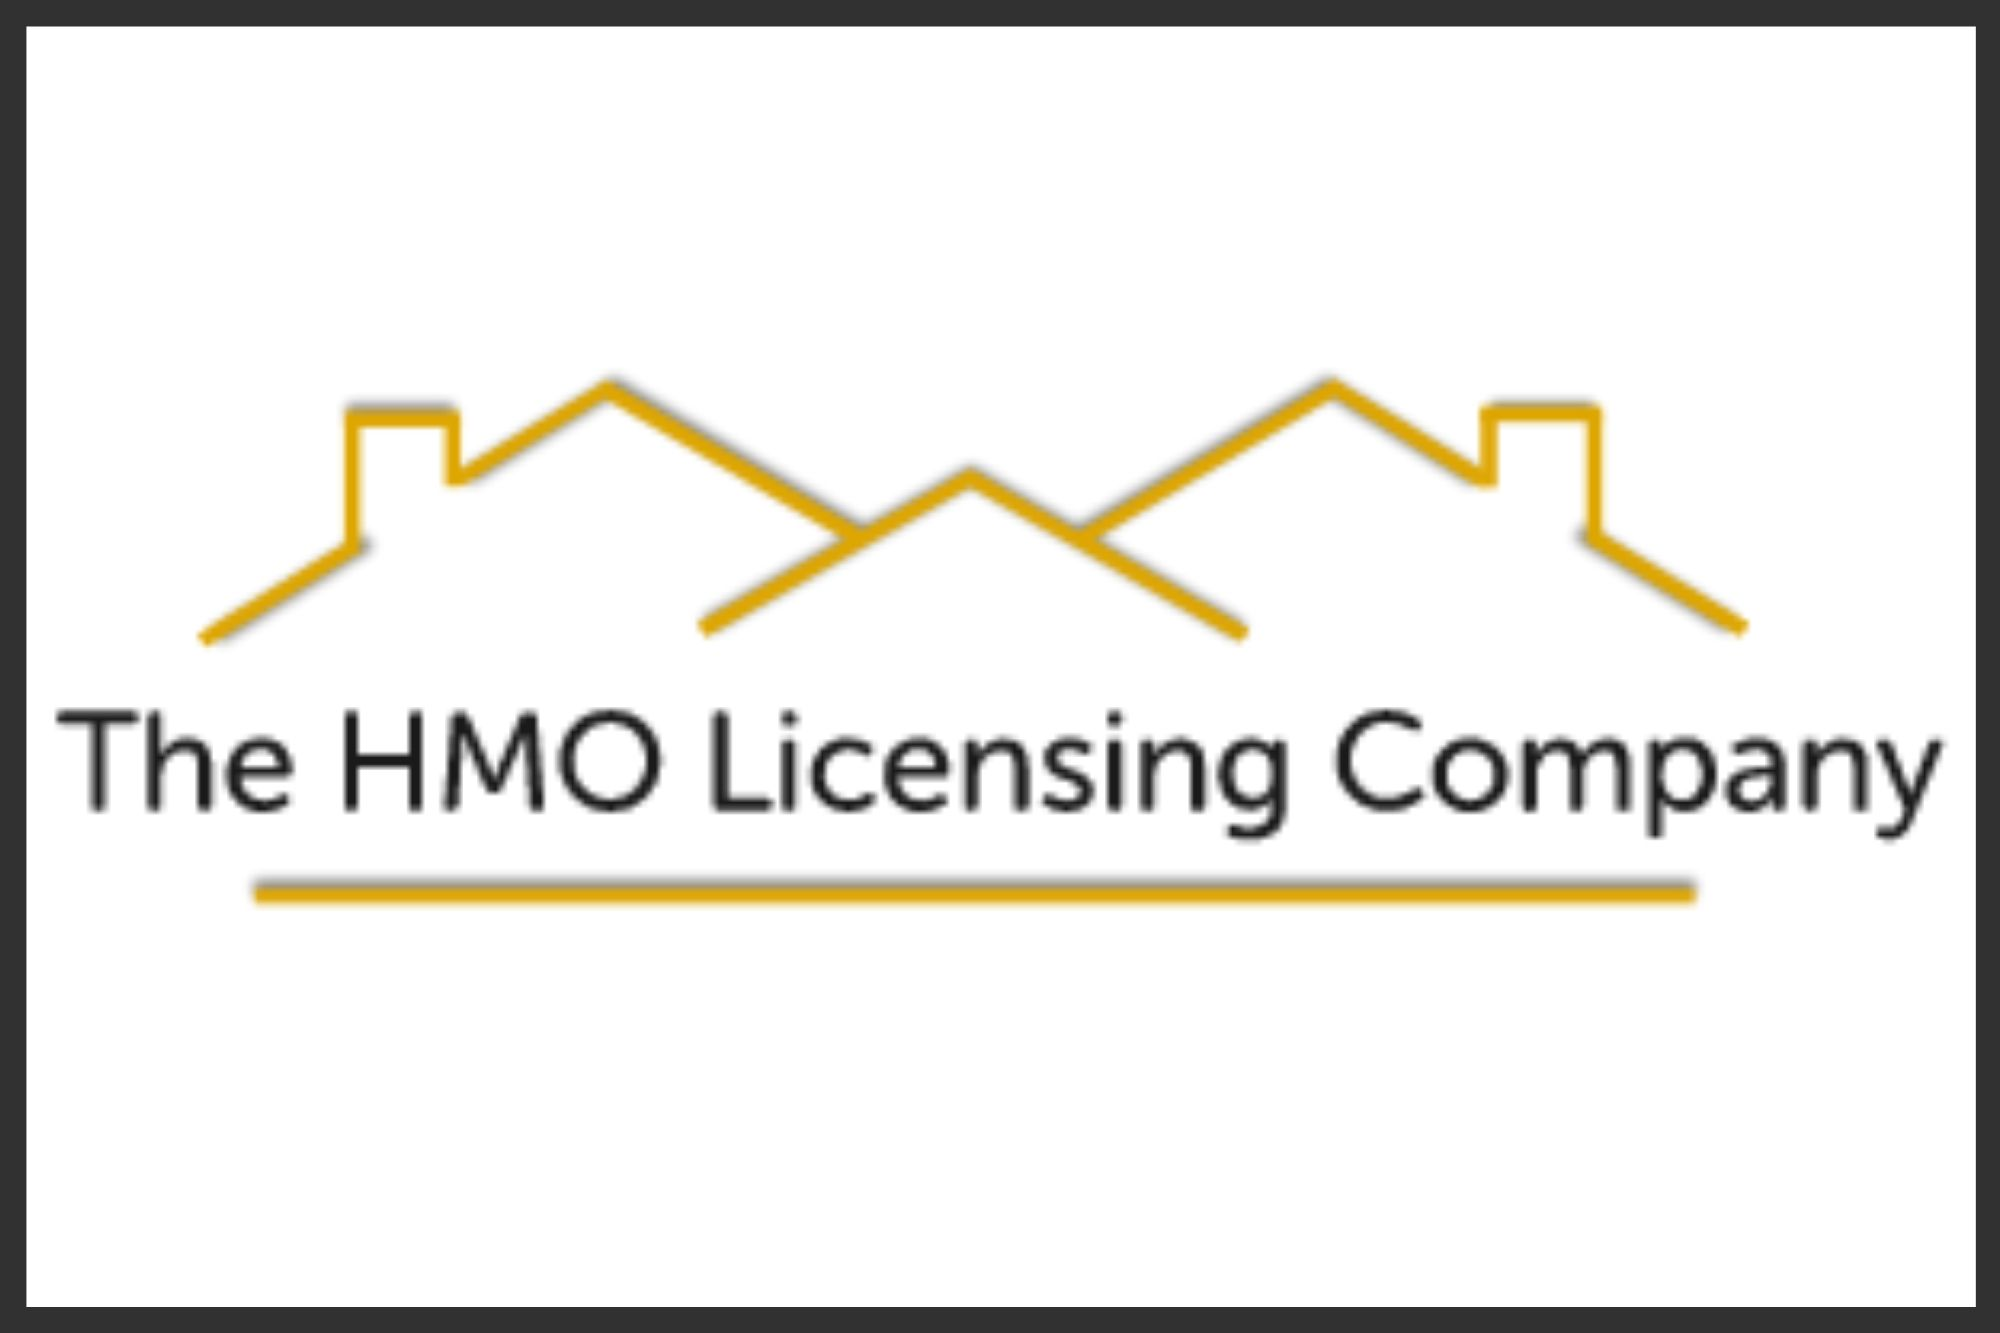 The HMO Licensing Company